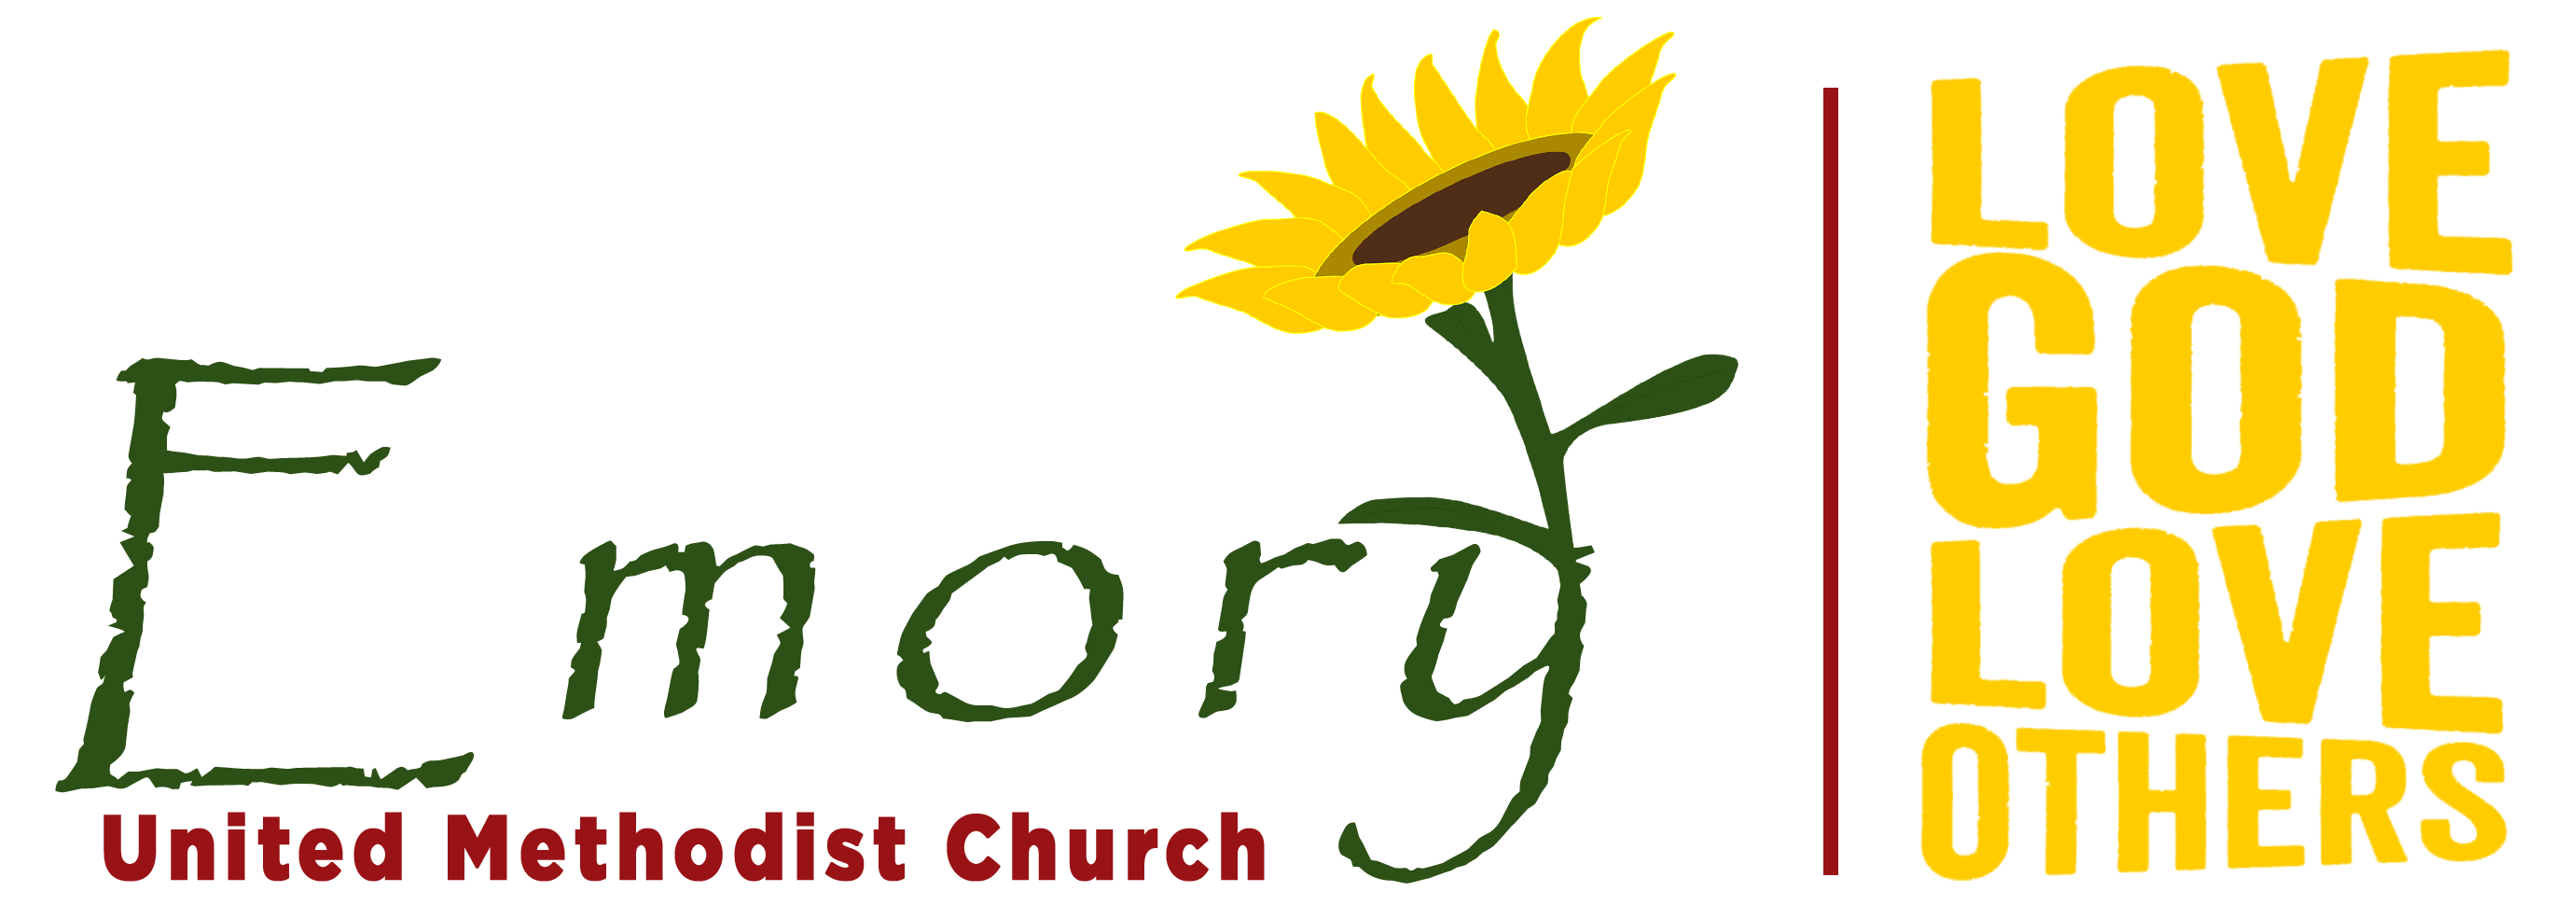 United methodist first sunday of may communion clipart images jpg black and white Emory United Methodist Church – Love God. Love Others. jpg black and white